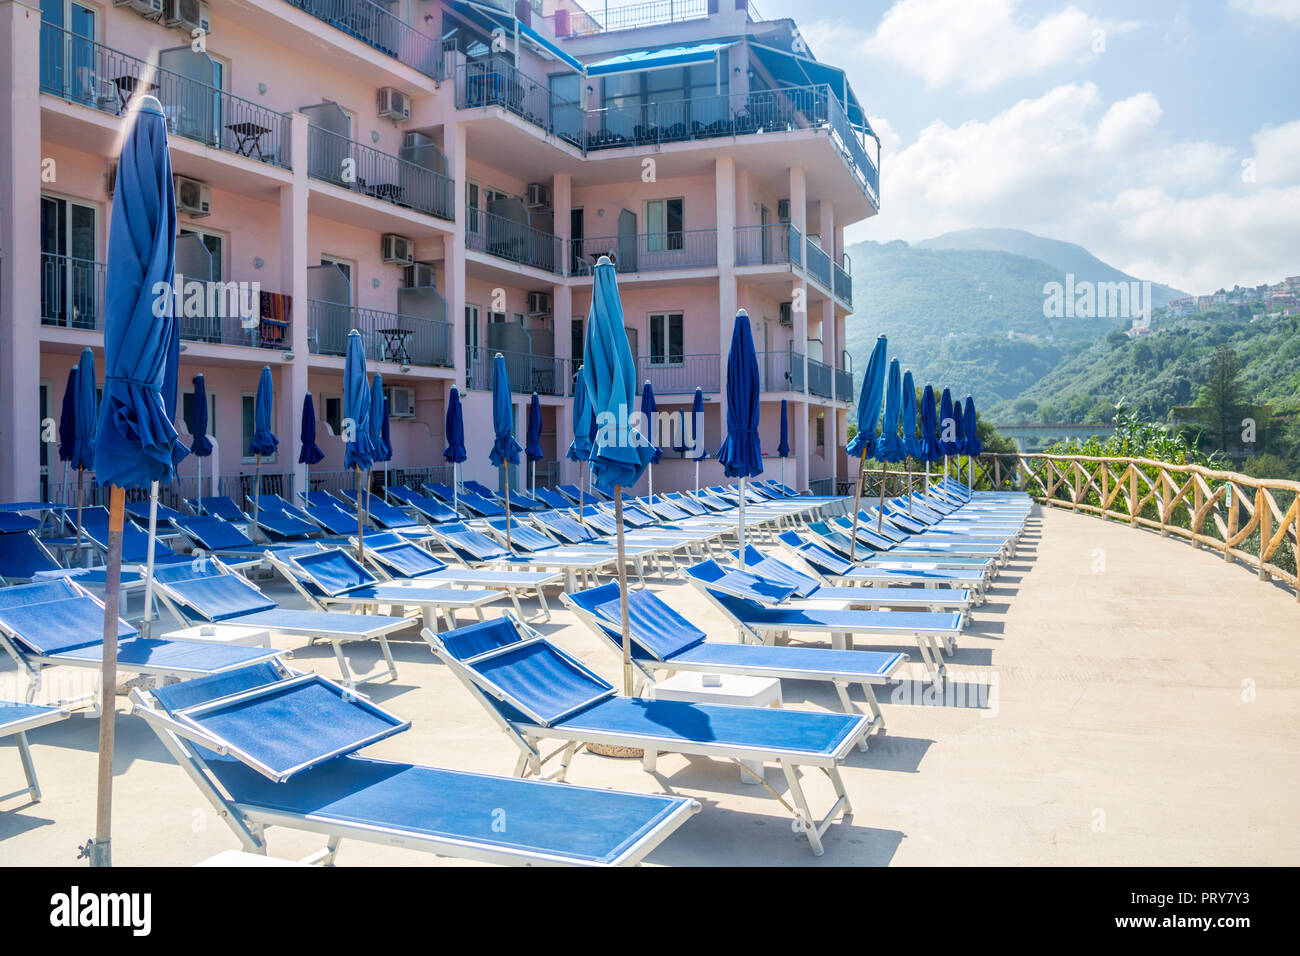 Hotel Pool Sunbeds Parasols Hills Mountain Background Vico